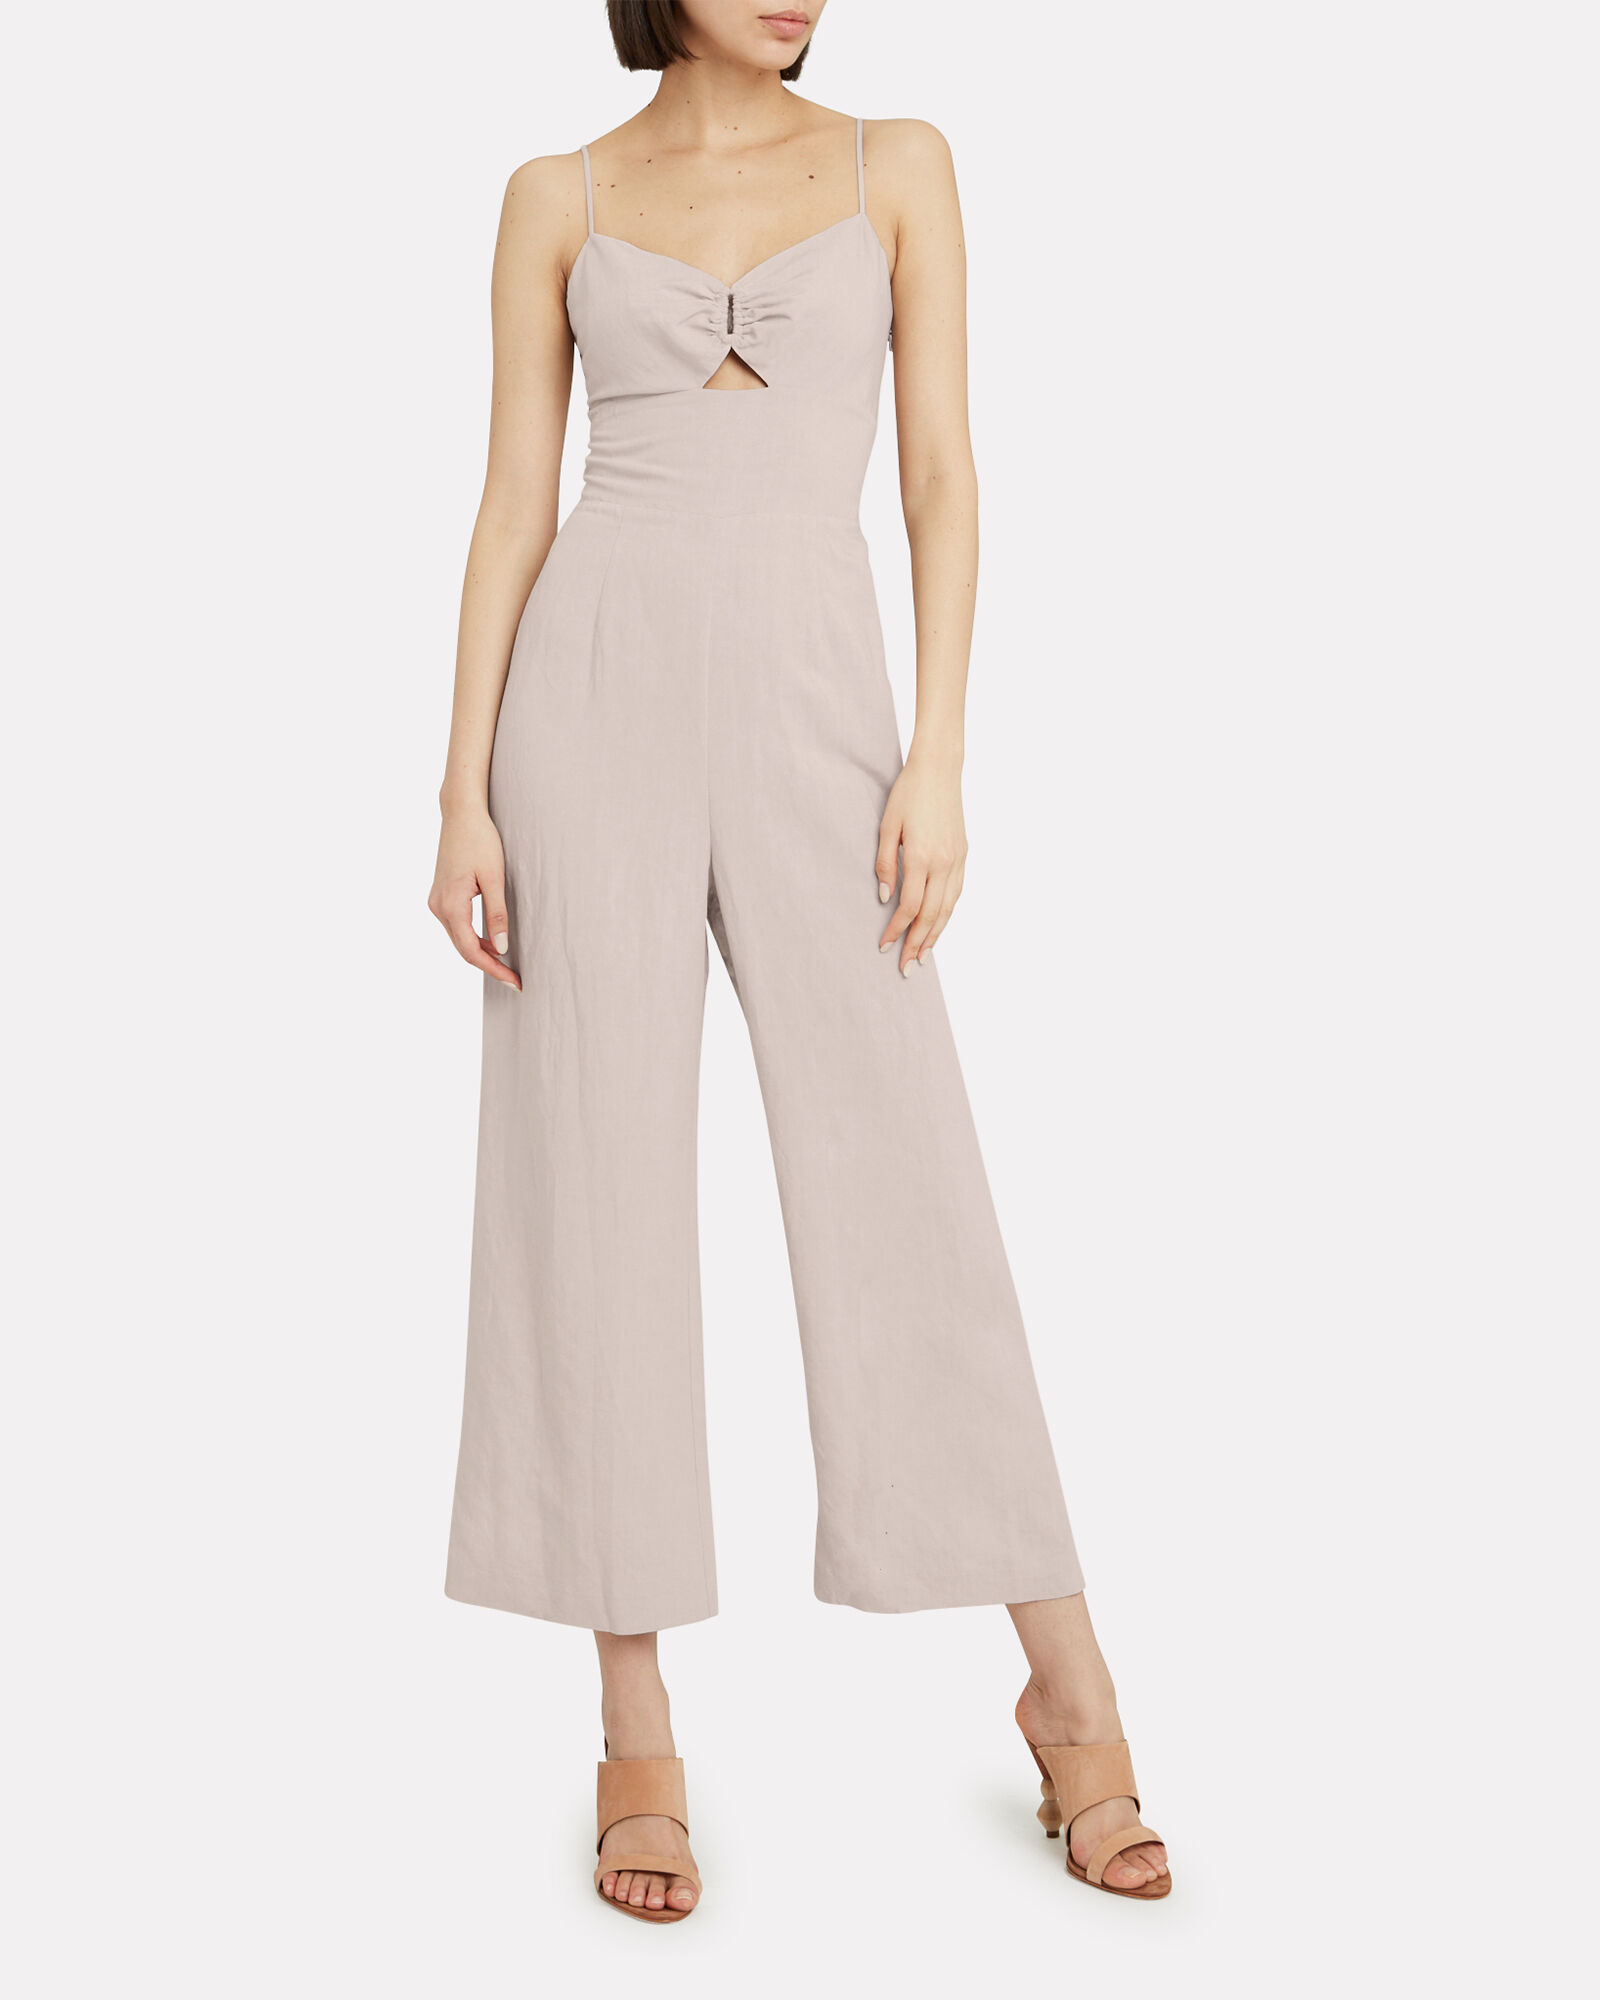 Claudie O-Ring Linen Jumpsuit, BEIGE, hi-res